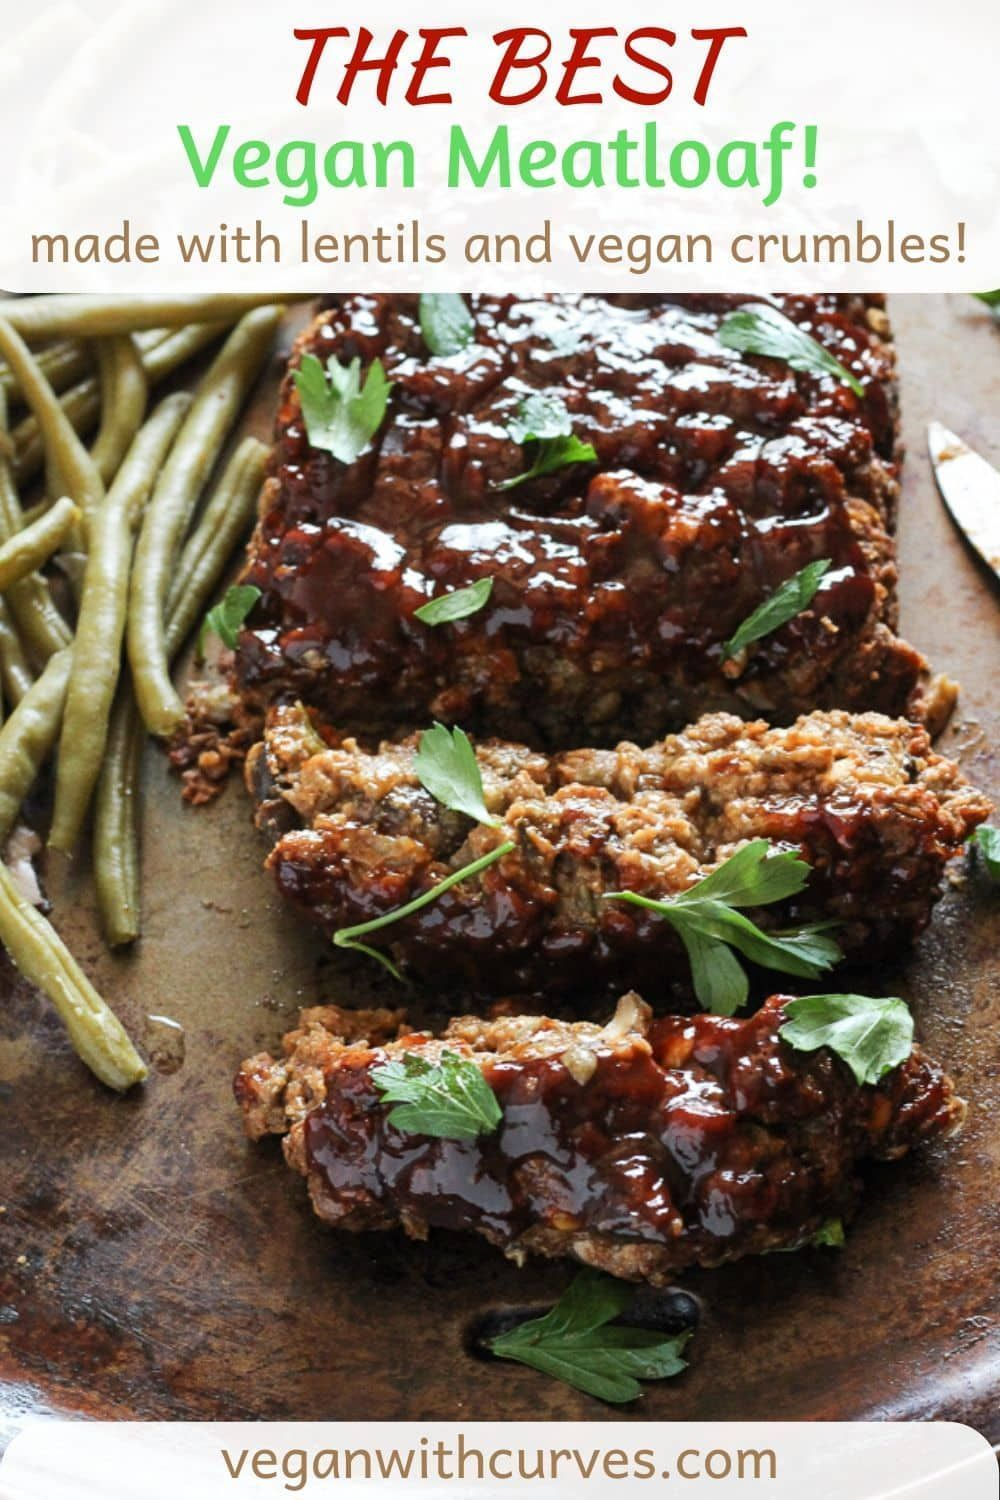 Photo of A Vegan Meat Loaf that uses lentils, mushrooms, and your favorite vegan ground b…